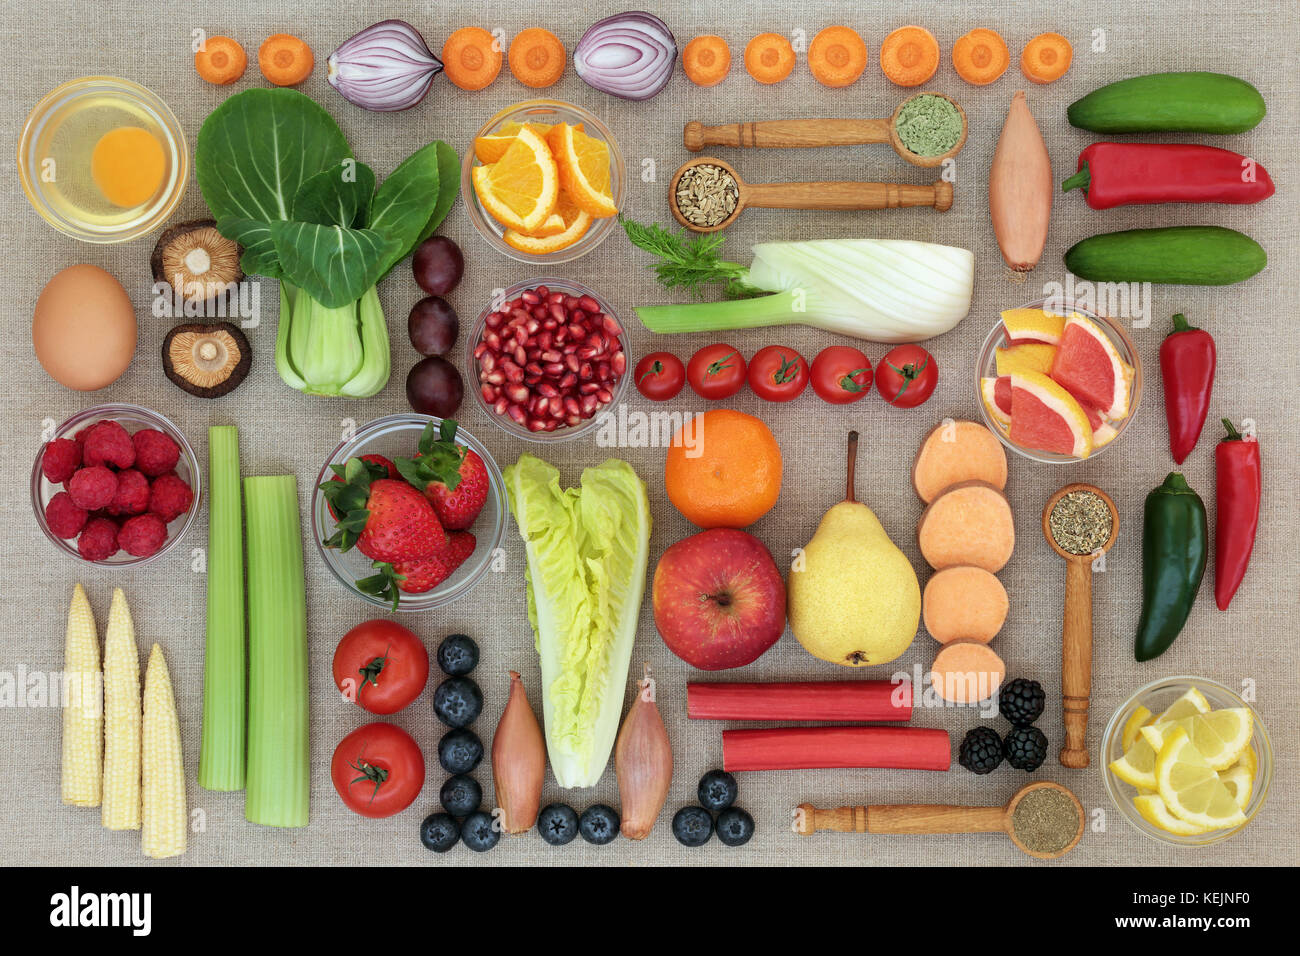 Super food for weight loss concept with fruit, vegetables, dairy, nutritional supplements and herbs used as appetite - Stock Image